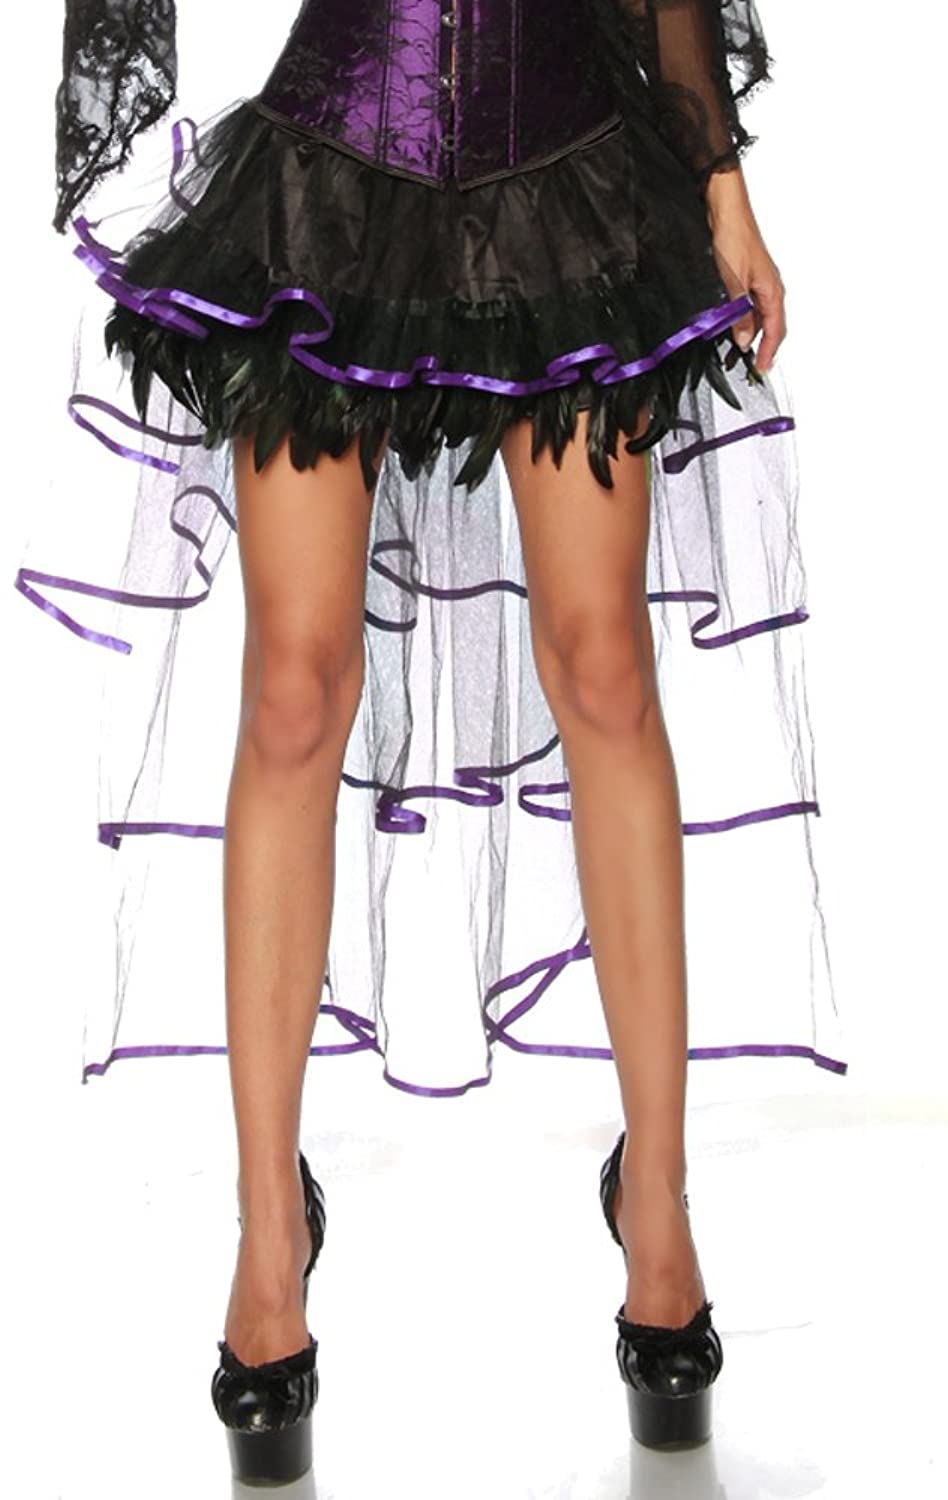 Jowiha ? Burlesque Satin Lace Skirt Flounce & Feathers Size One-Size 2 colours, Black or Purple One Size S-L Black